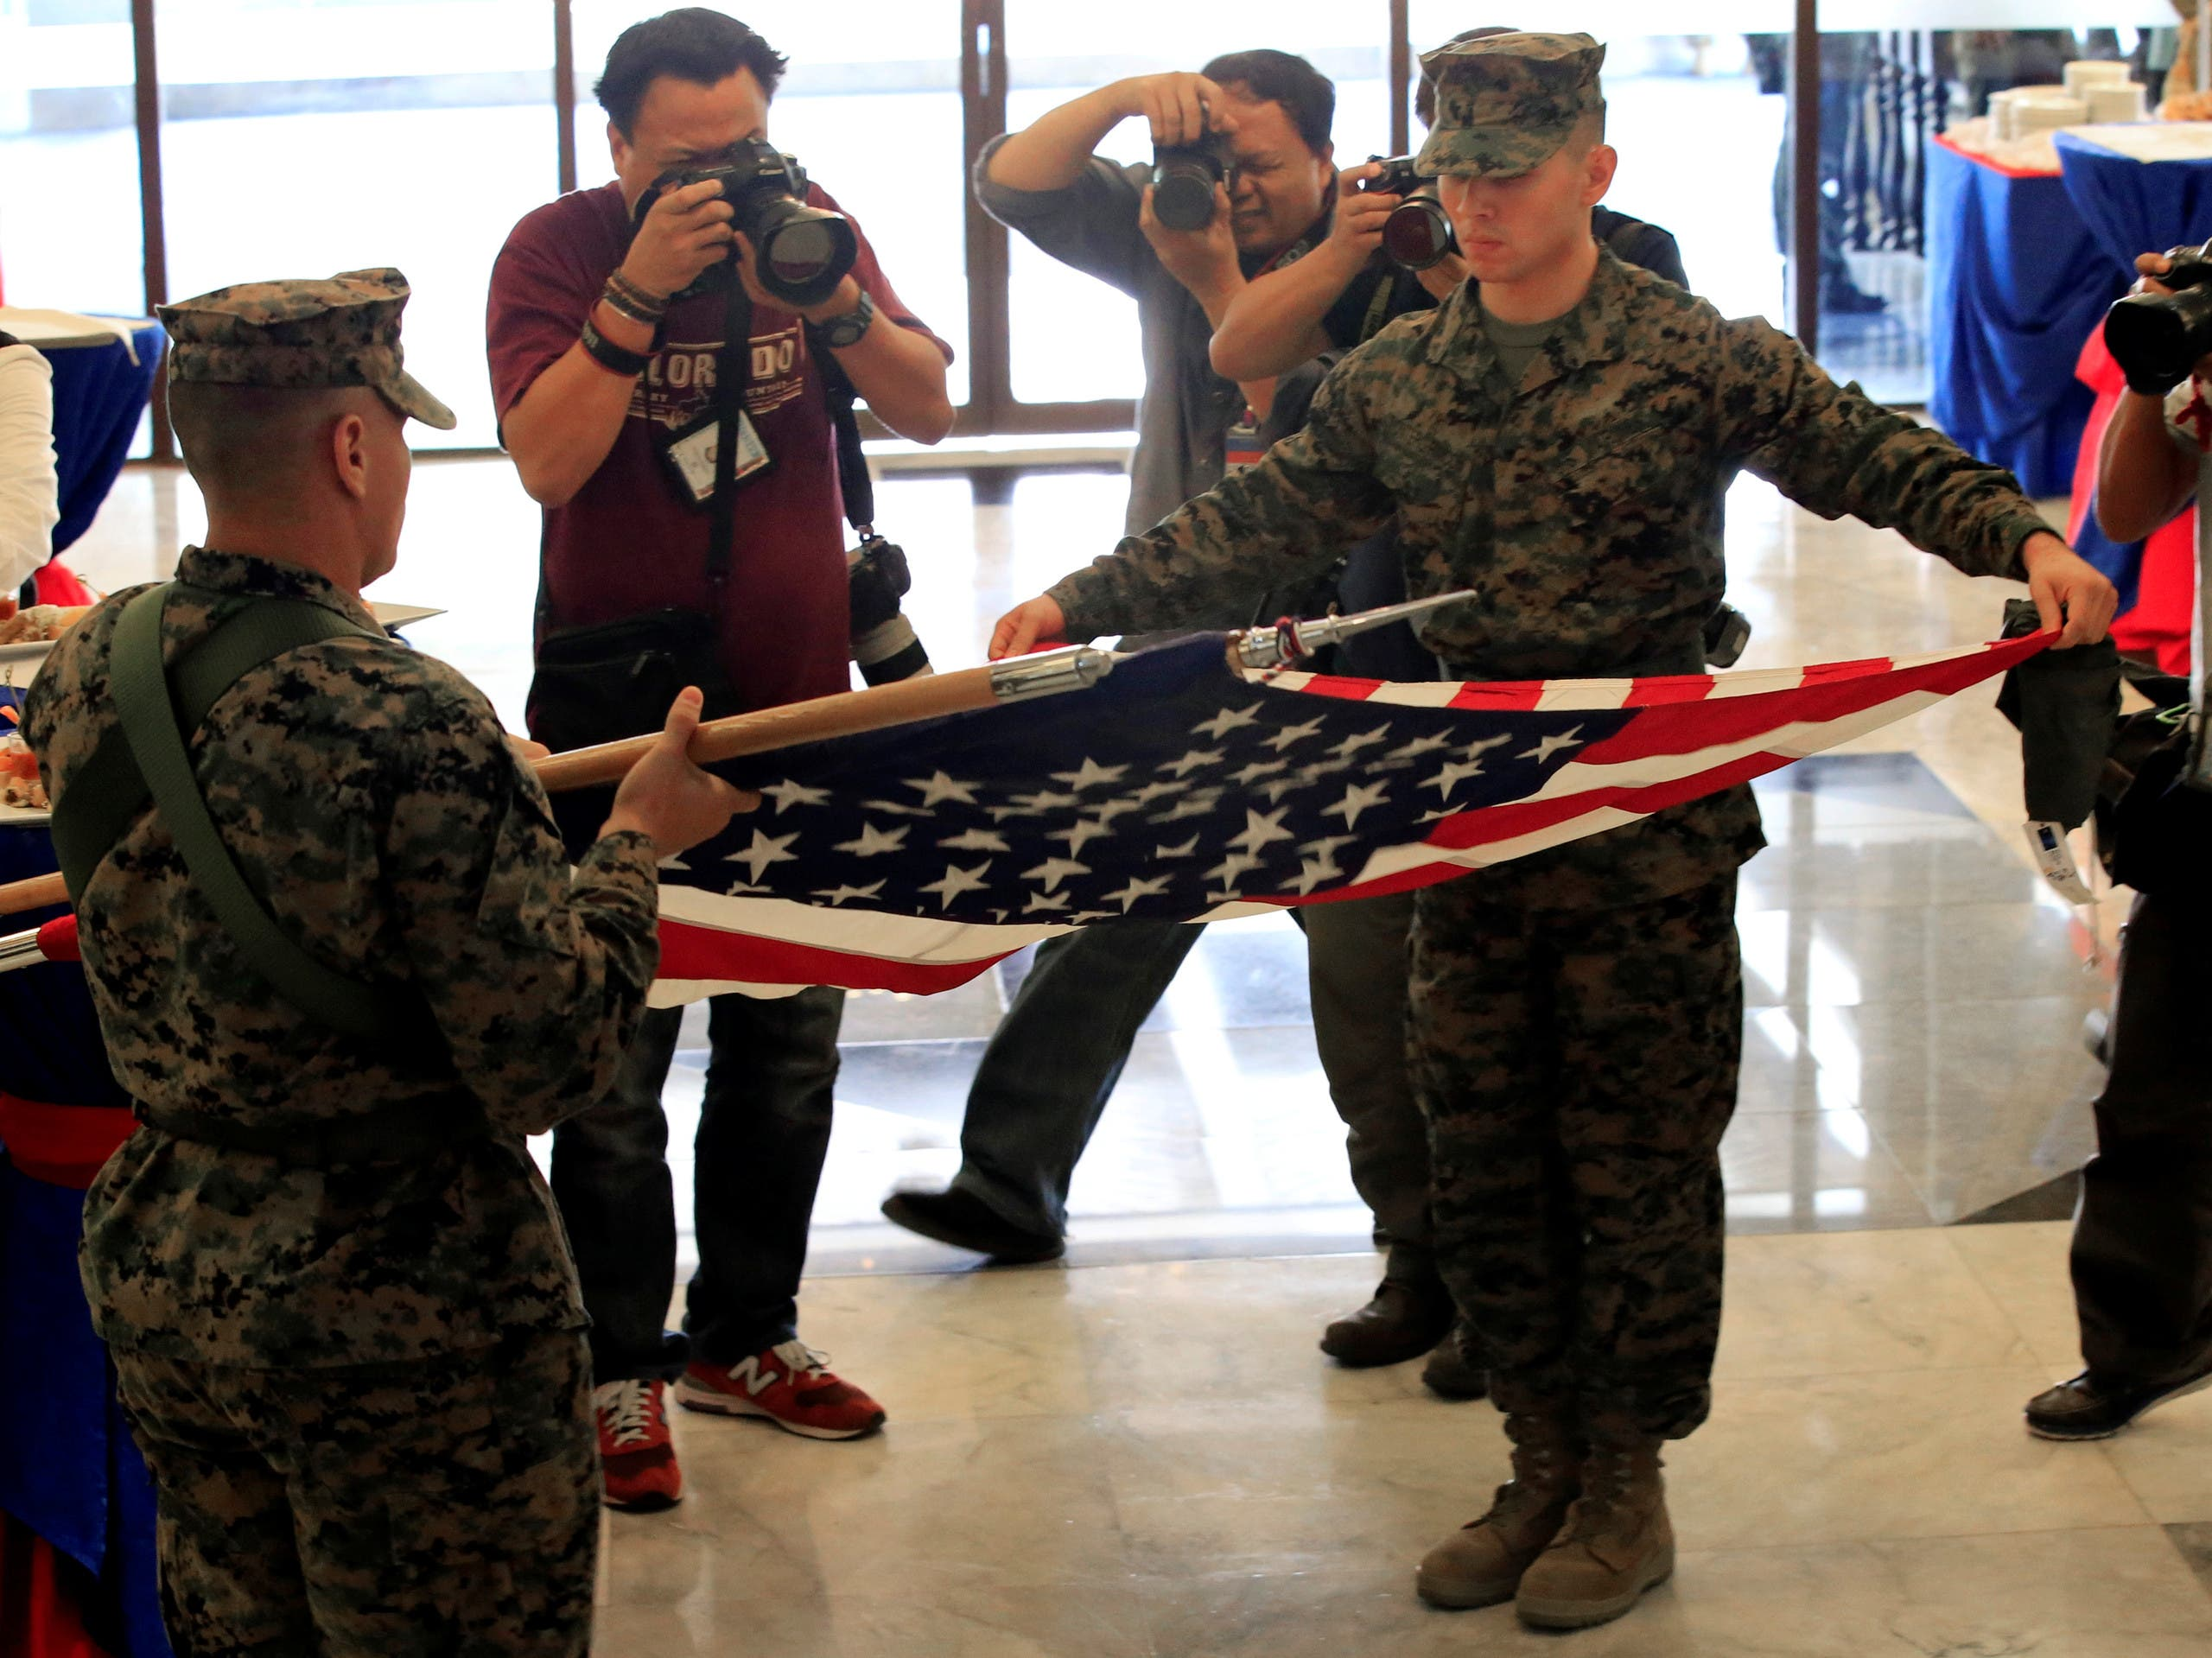 US soldiers furl the American flag during the closing ceremony of Philippines and US military joint exercises called Balikatan (Shoulder to Shoulder) at Camp Aguinaldo in Quezon city, Metro Manila, Philippines May 19, 2017. (Reuters)